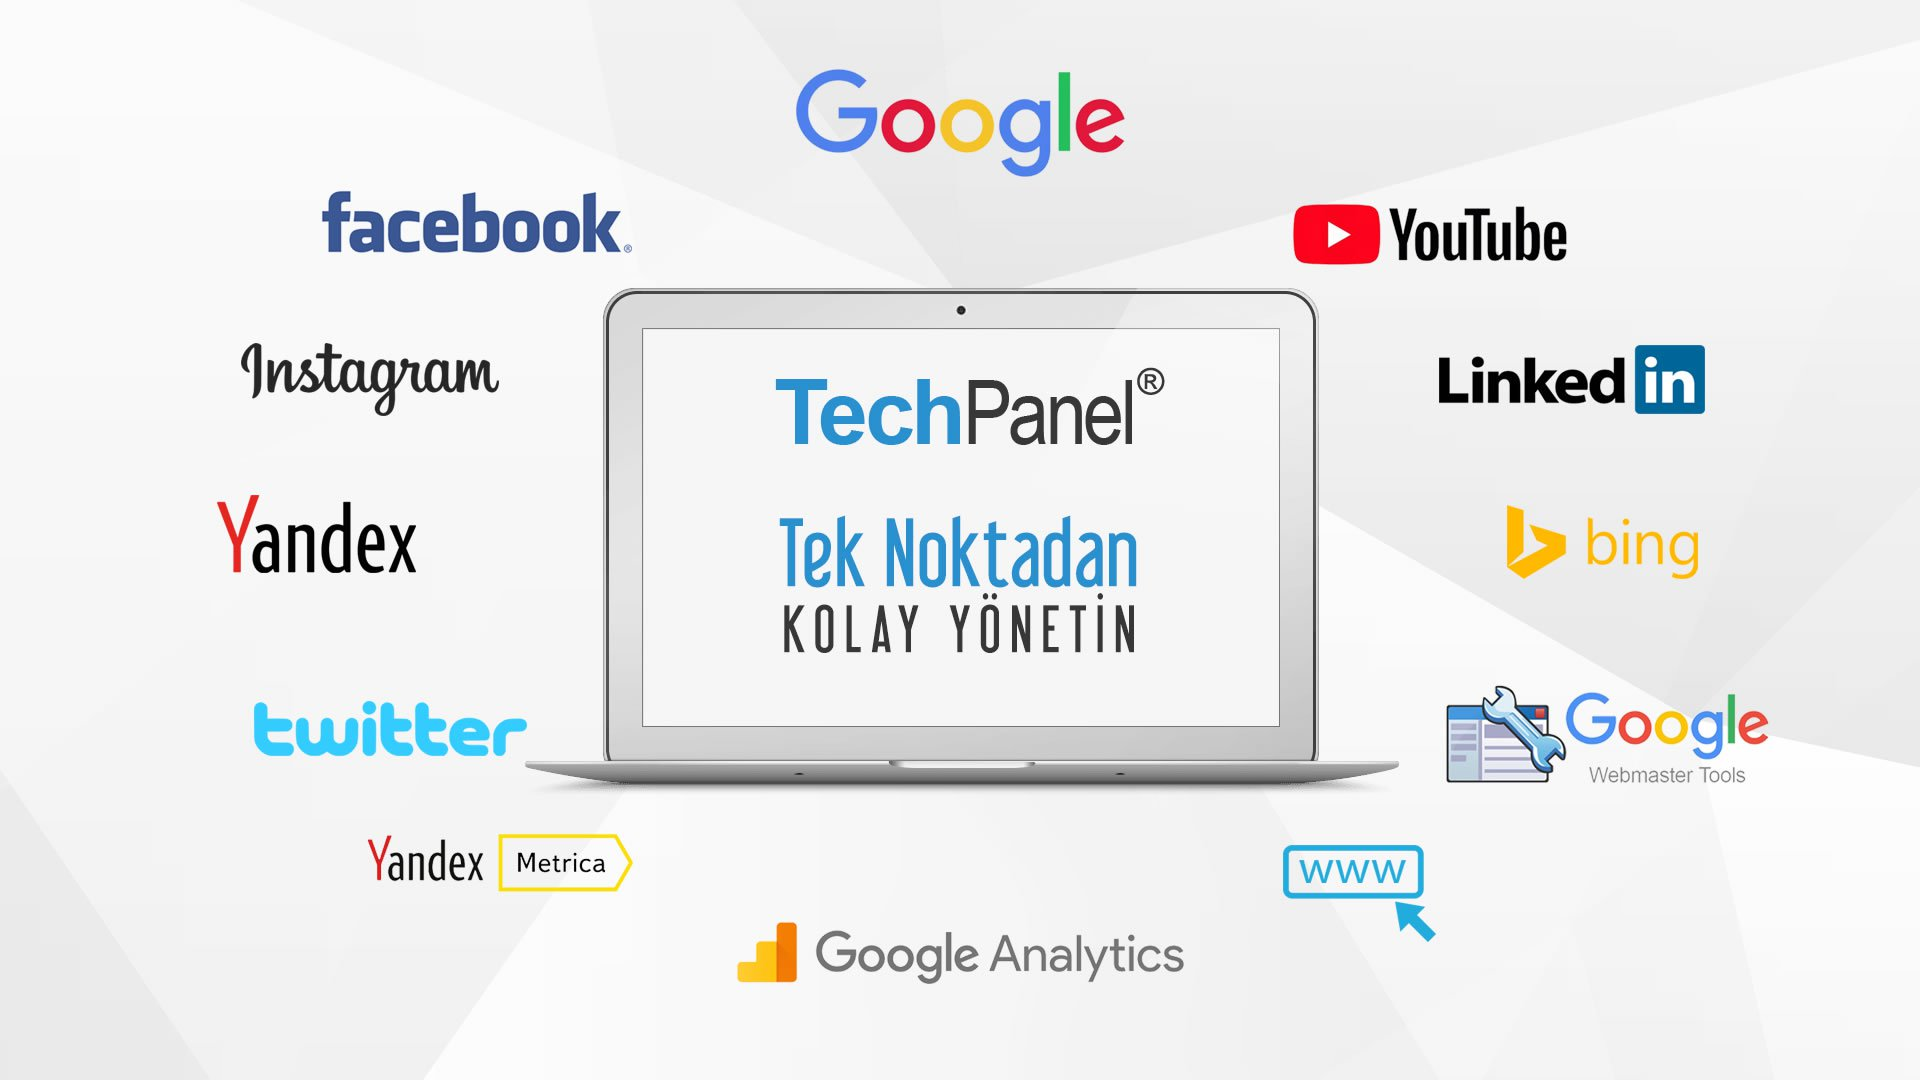 Techpanel